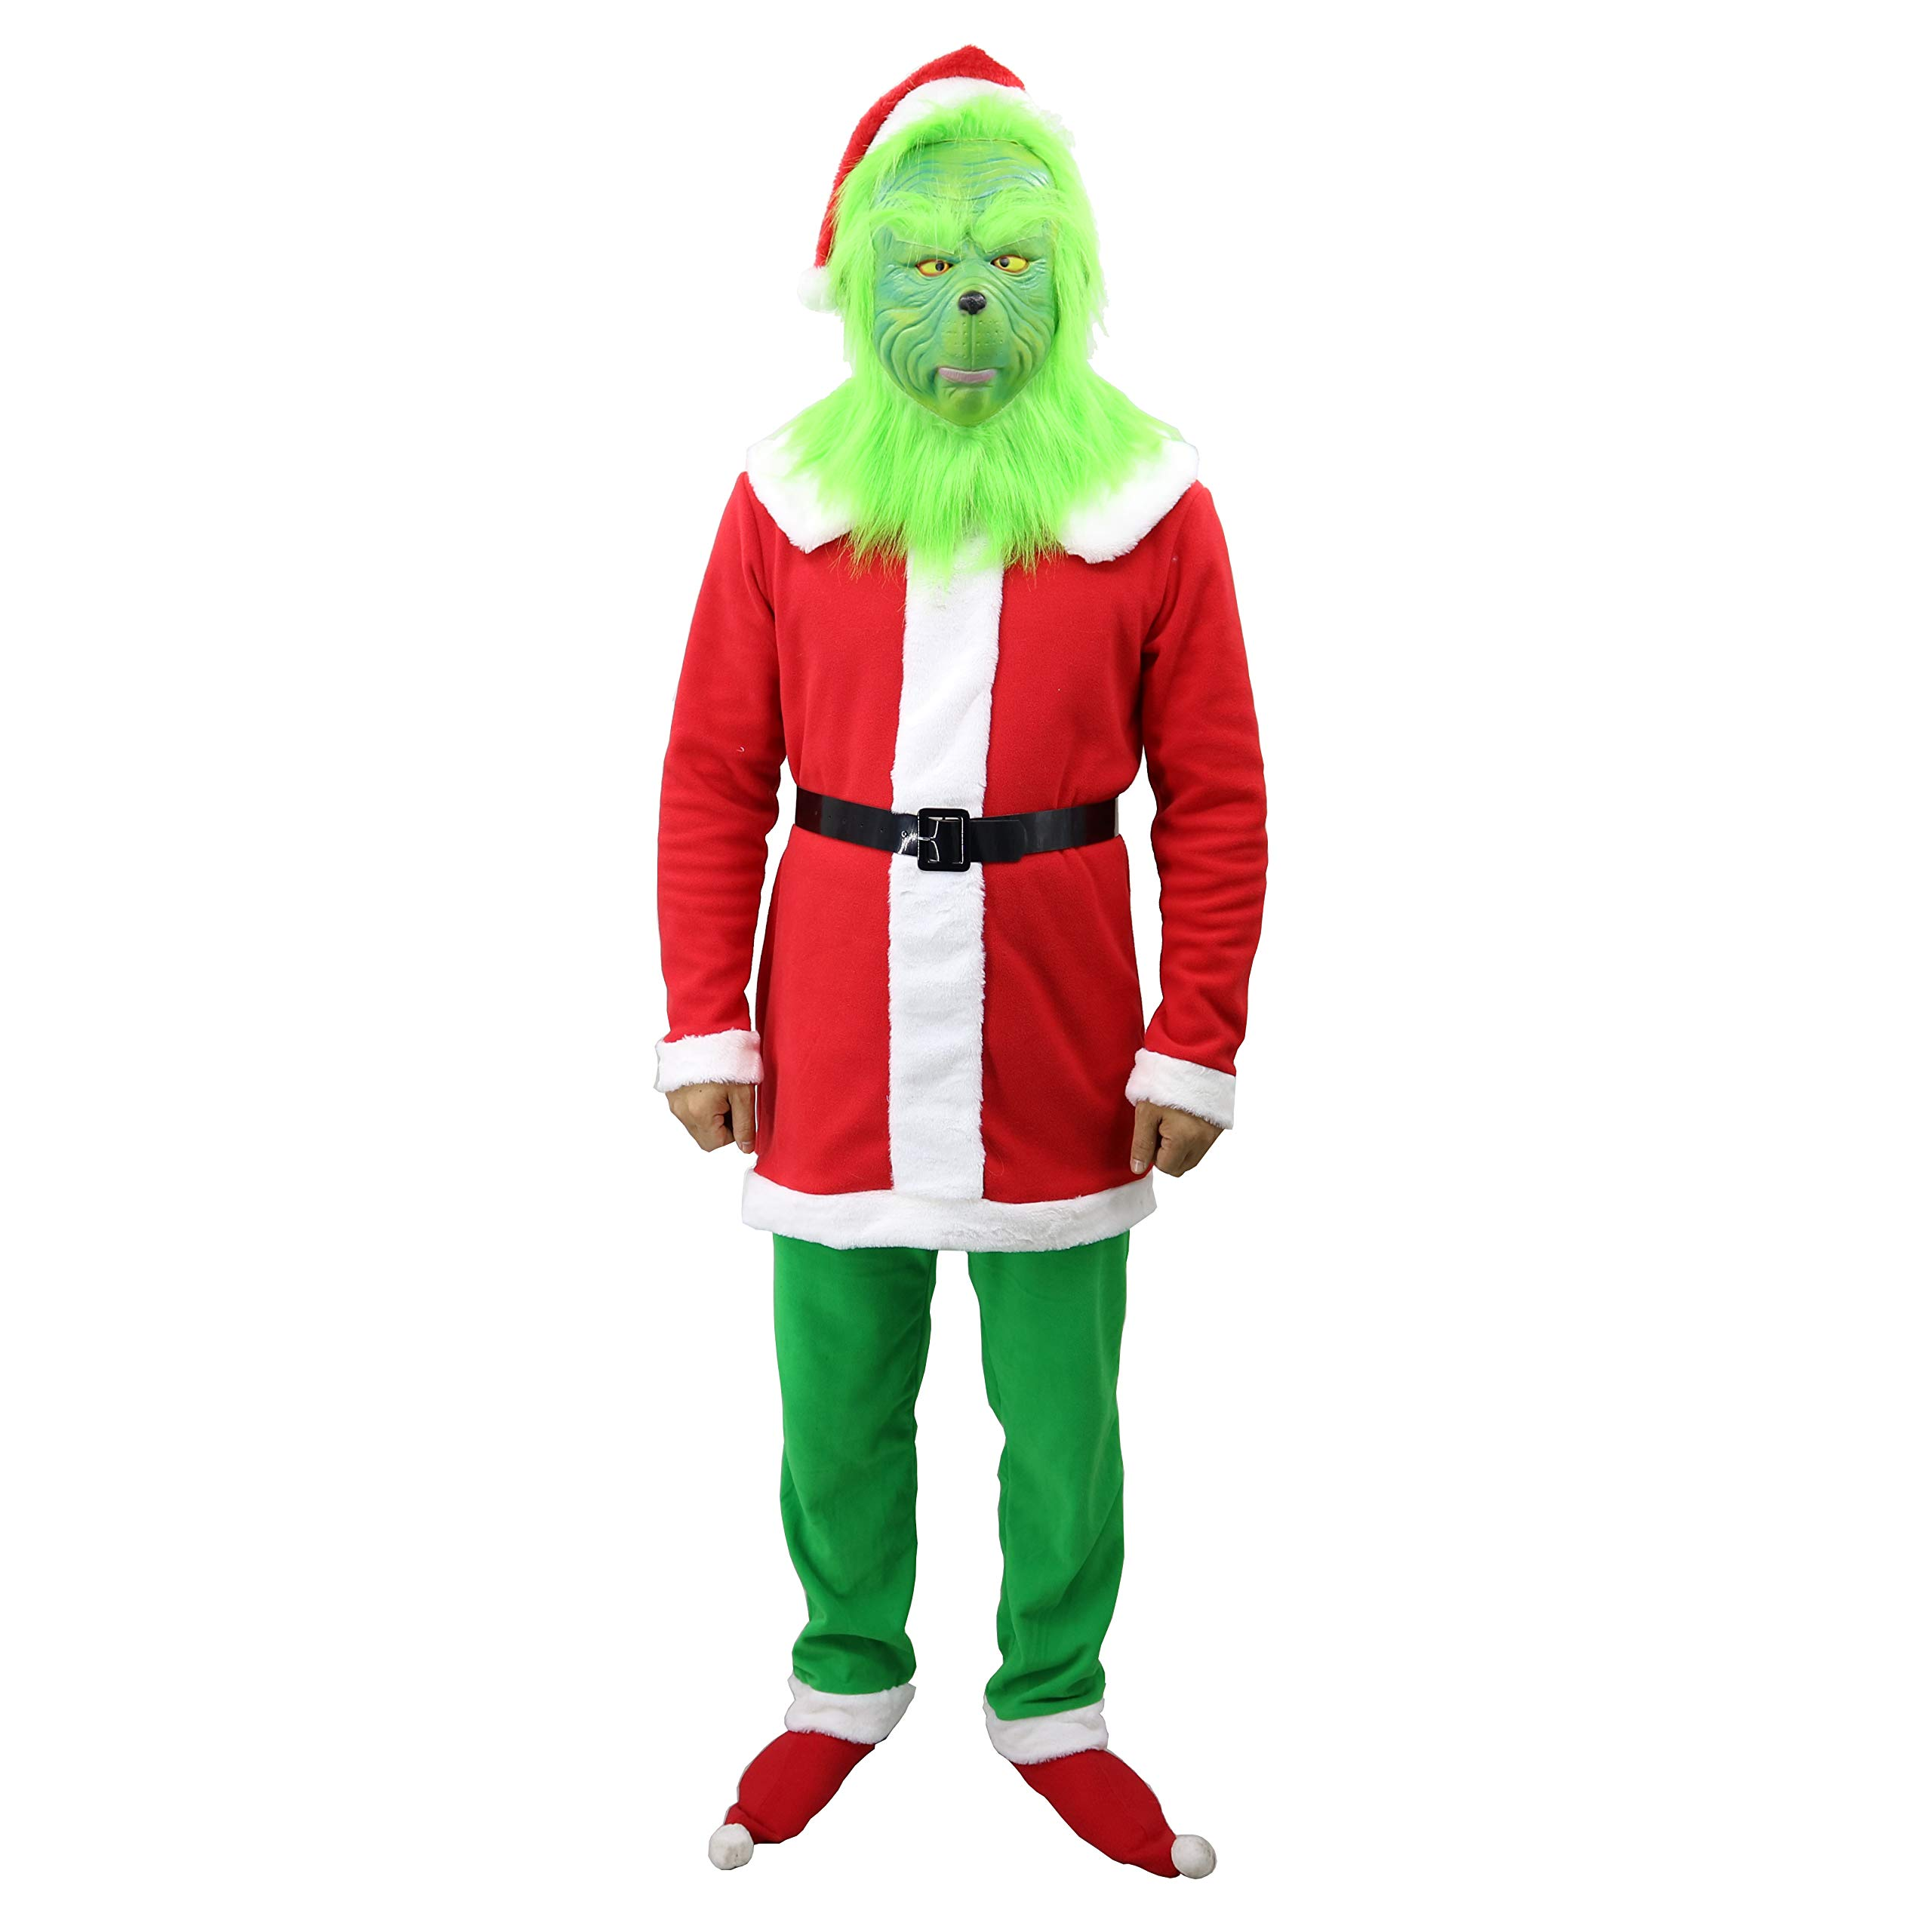 QIKI Grinch Costume Christmas Cosplay Grinch Latex Mask + Christmas hat + Christmas Outfit +Belt + Green Gloves (A, Large)